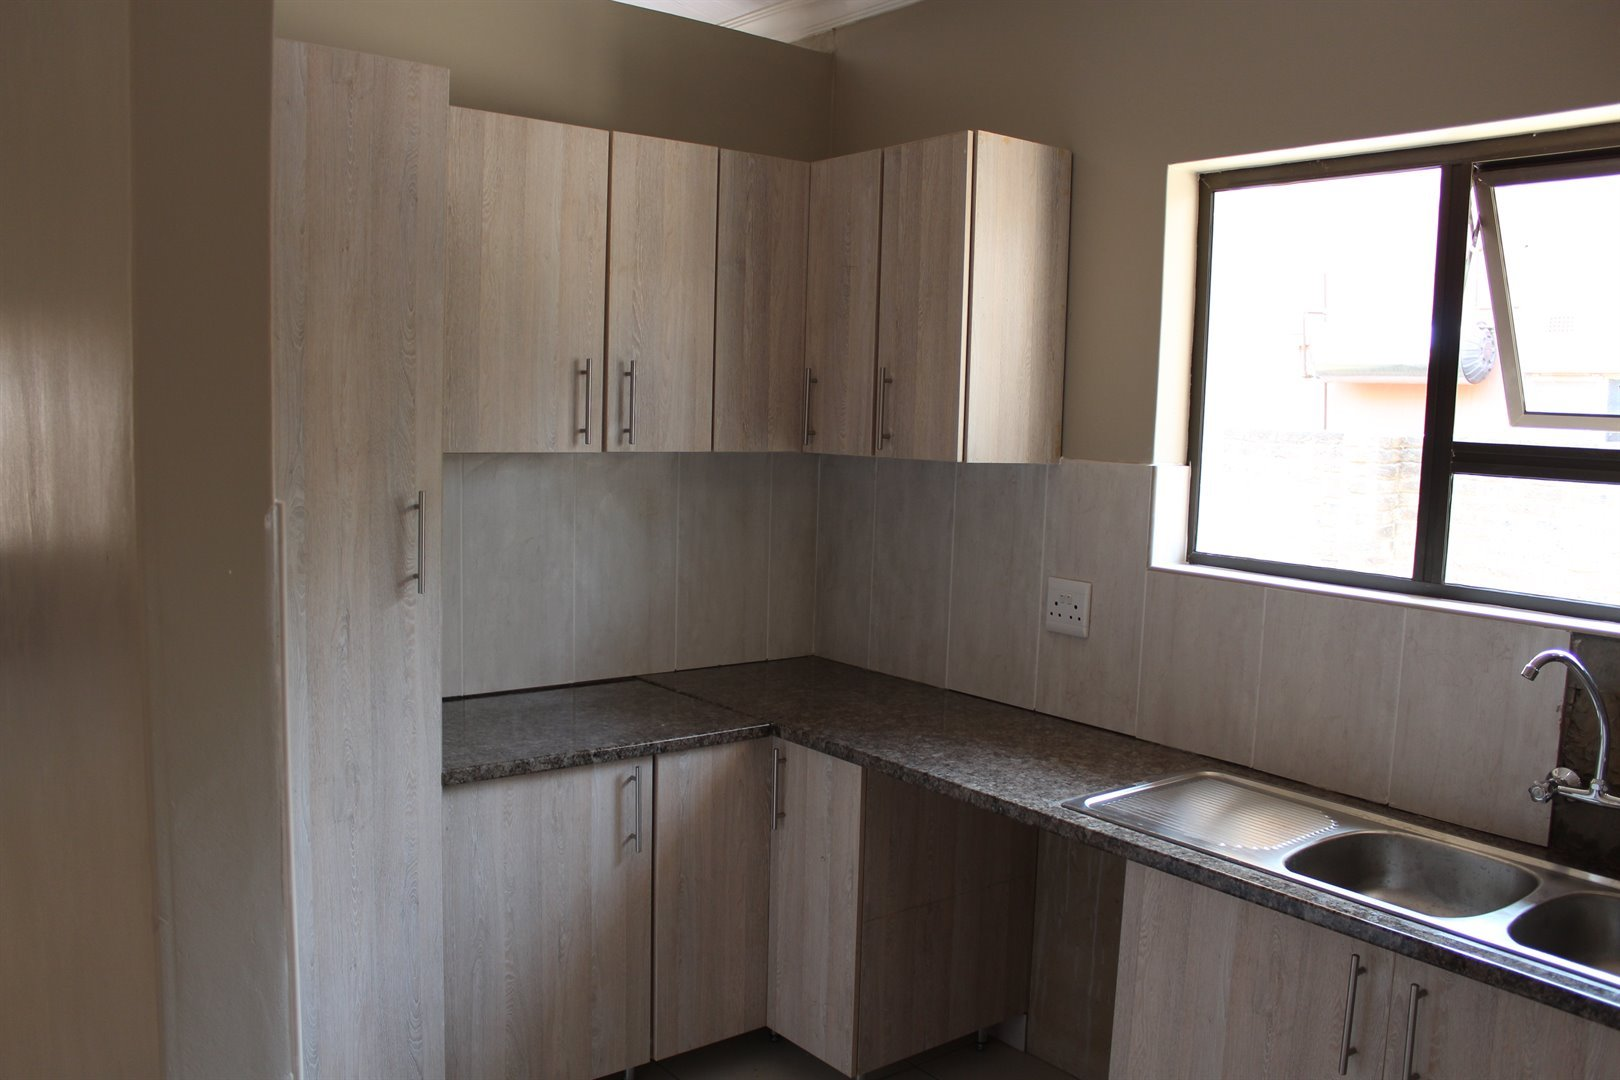 Potchefstroom Central property for sale. Ref No: 13458397. Picture no 4